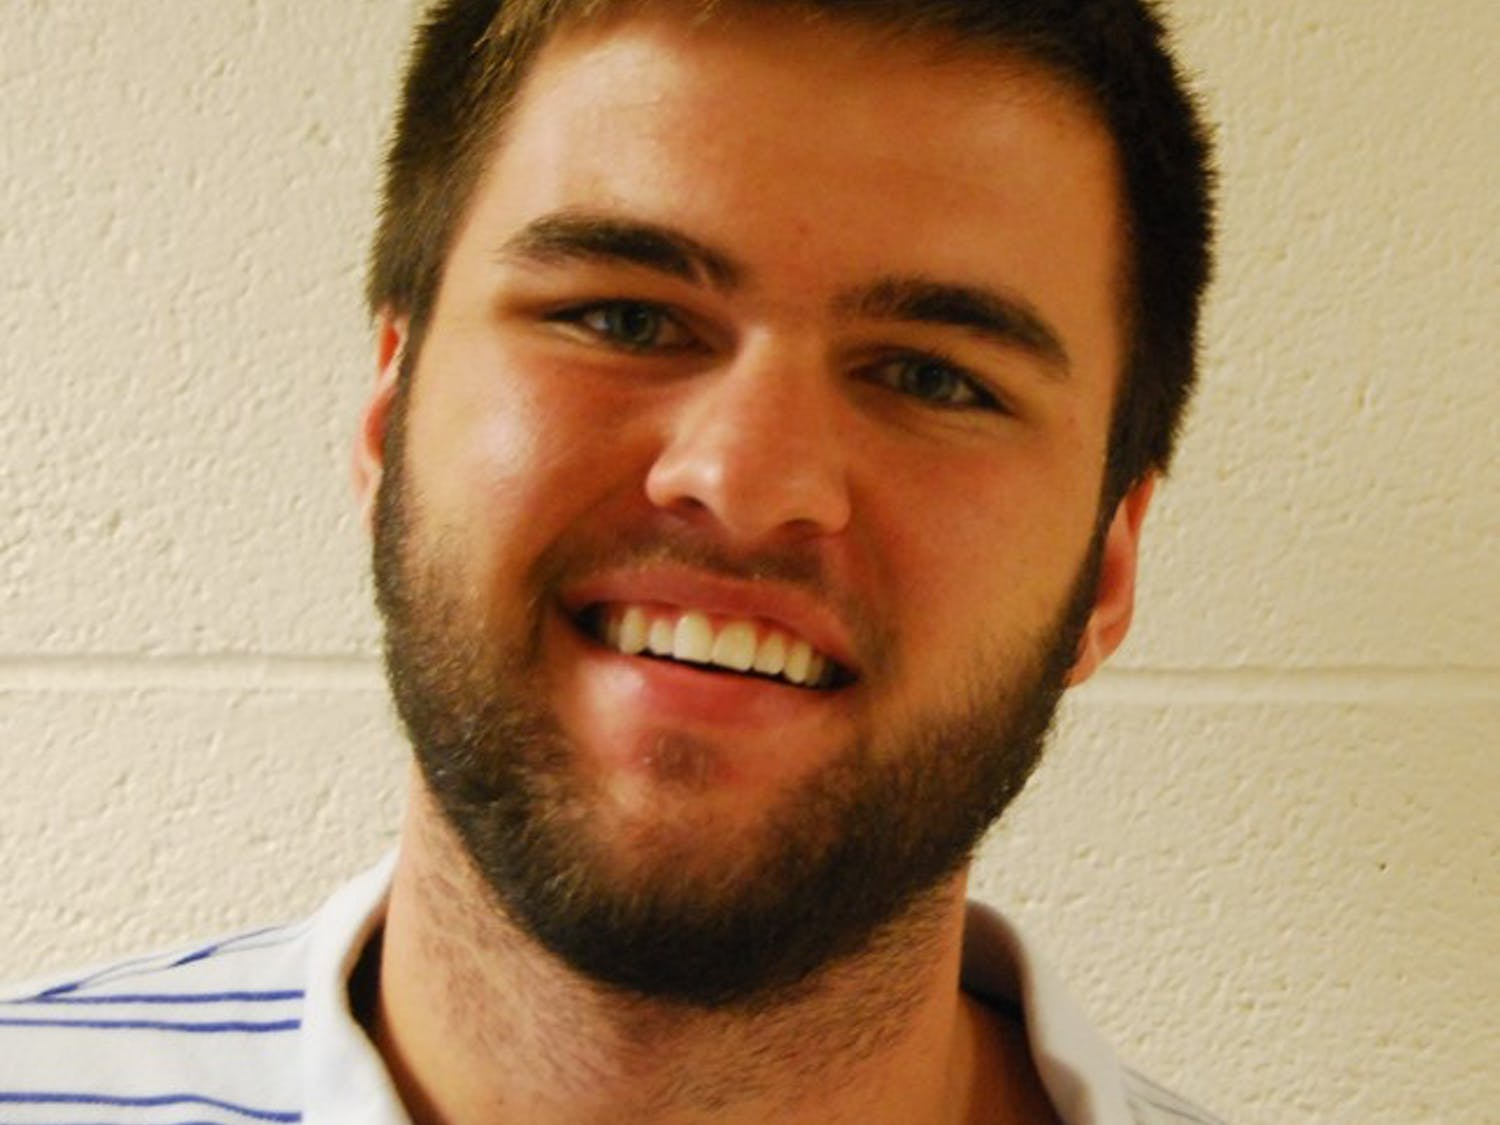 Senior business major Grant Miller is participating in No Shave November, a national event where people avoid shaving for a month.